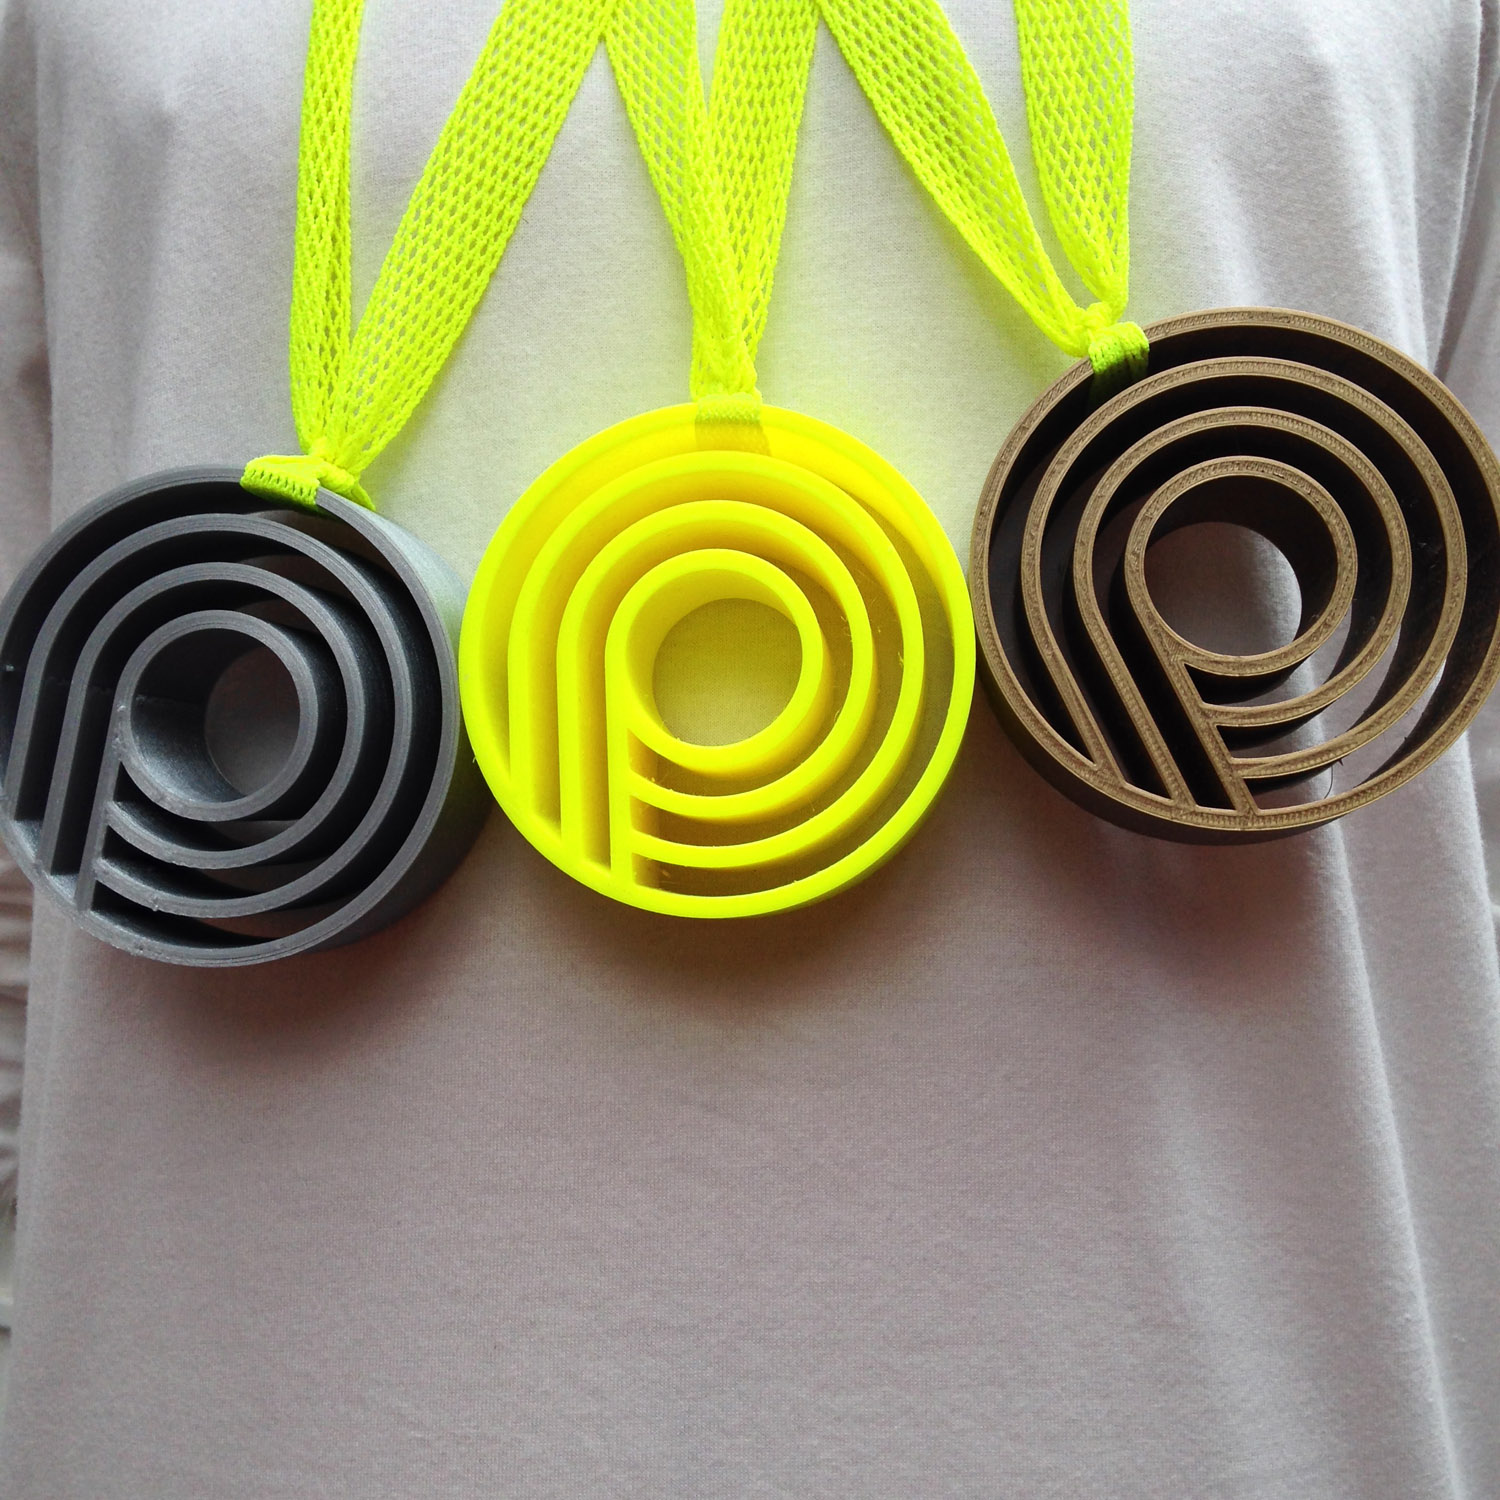 'Puddle Dash' the Plume mudguard video game medals